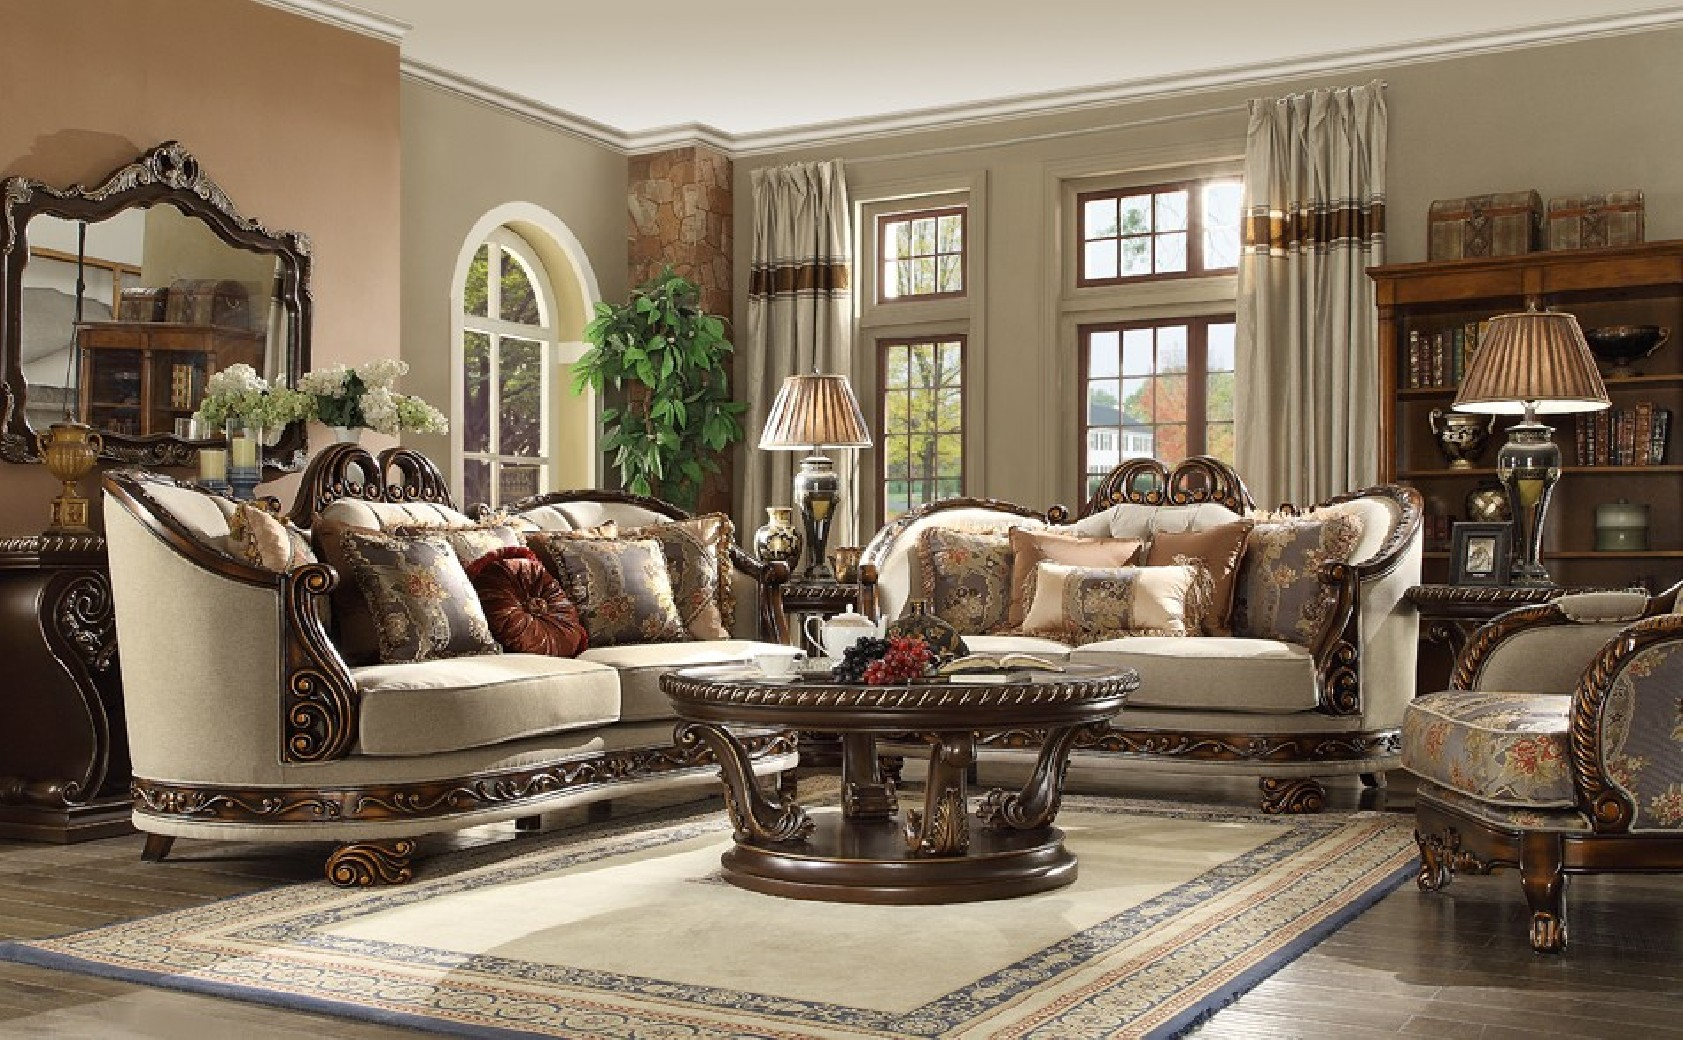 Hd 1623 Homey Design Upholstery Living Room Set Victorian European